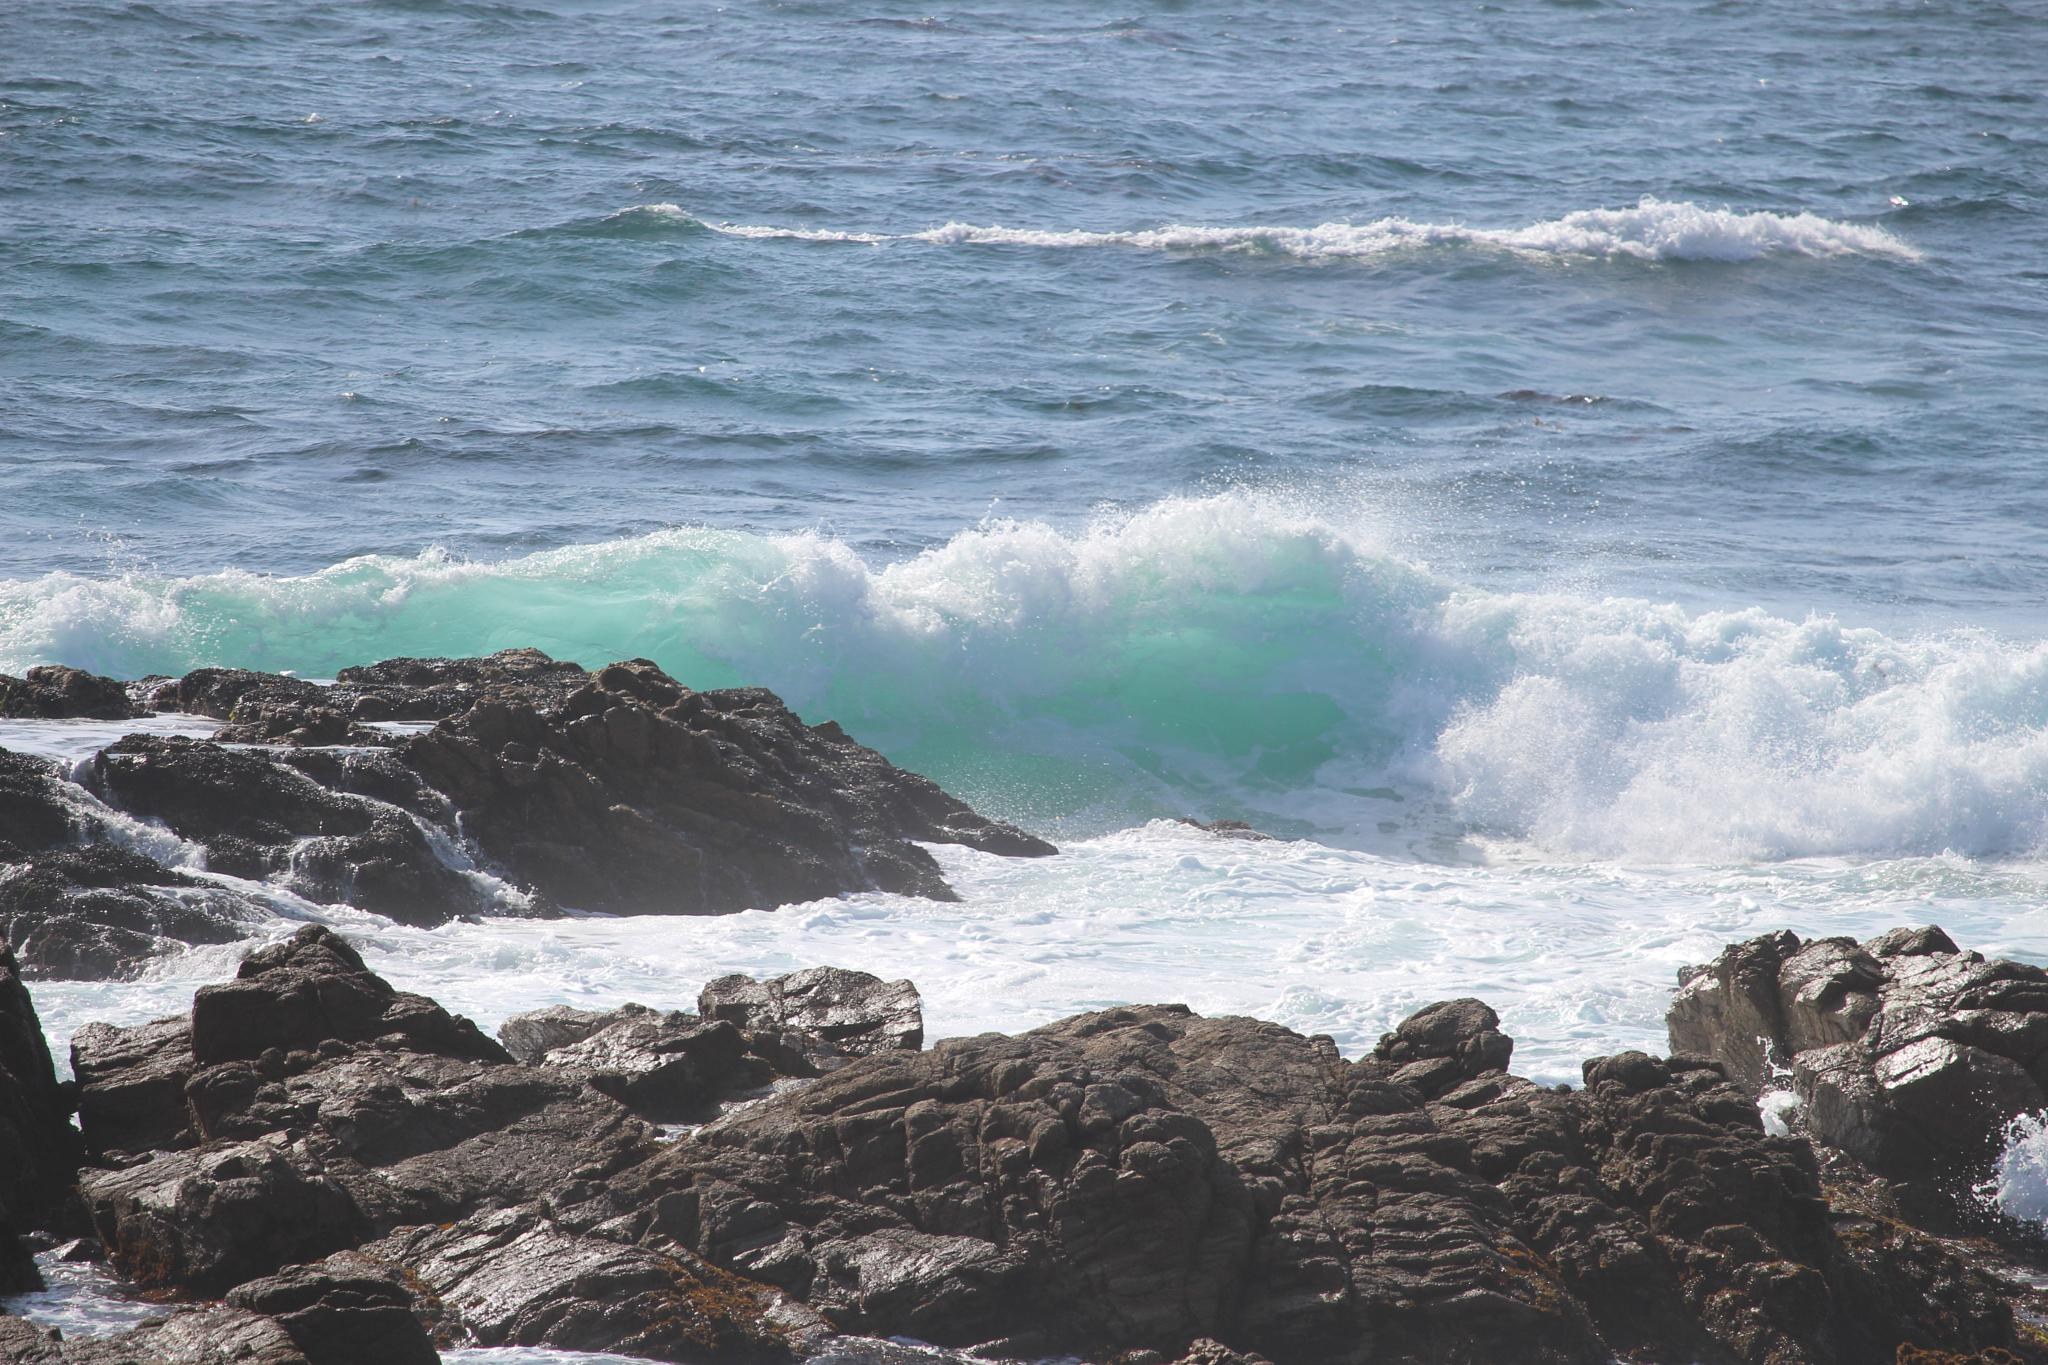 Aqua Wave and Rocks by Kristen Dewey Wright